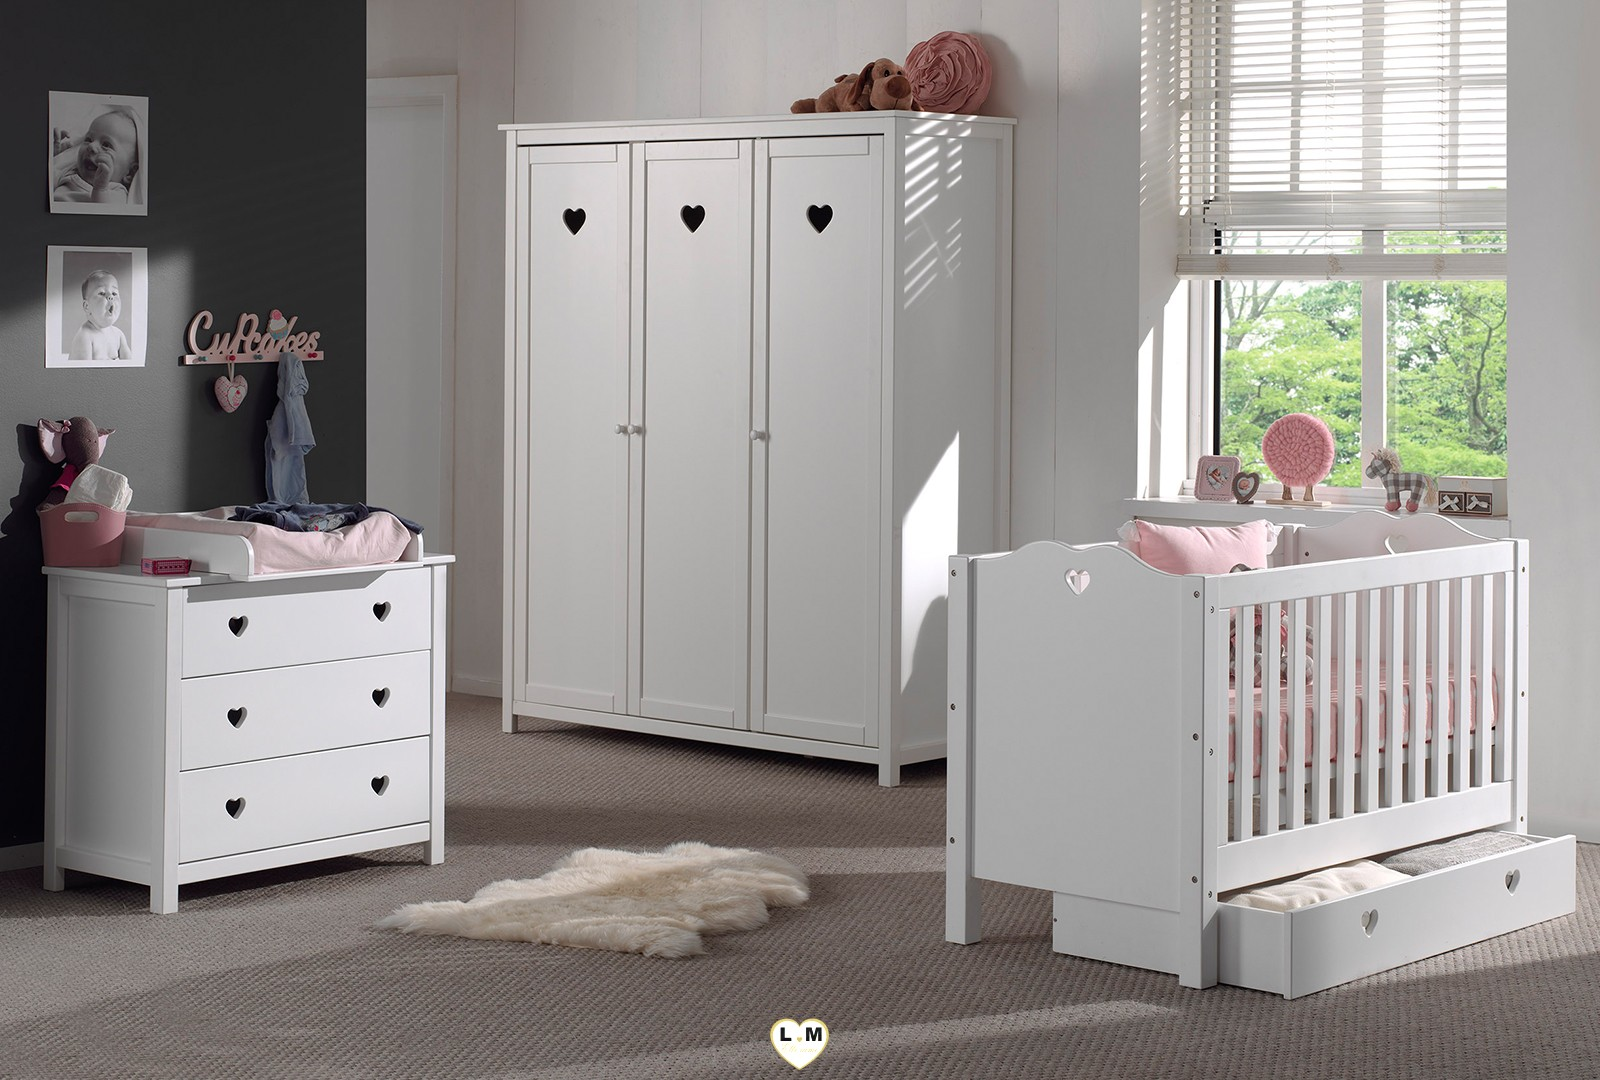 amour laque blanc mat chambre bebe l 39 ensemble comprenant l 39 armoire 3 portes le lit bebe. Black Bedroom Furniture Sets. Home Design Ideas